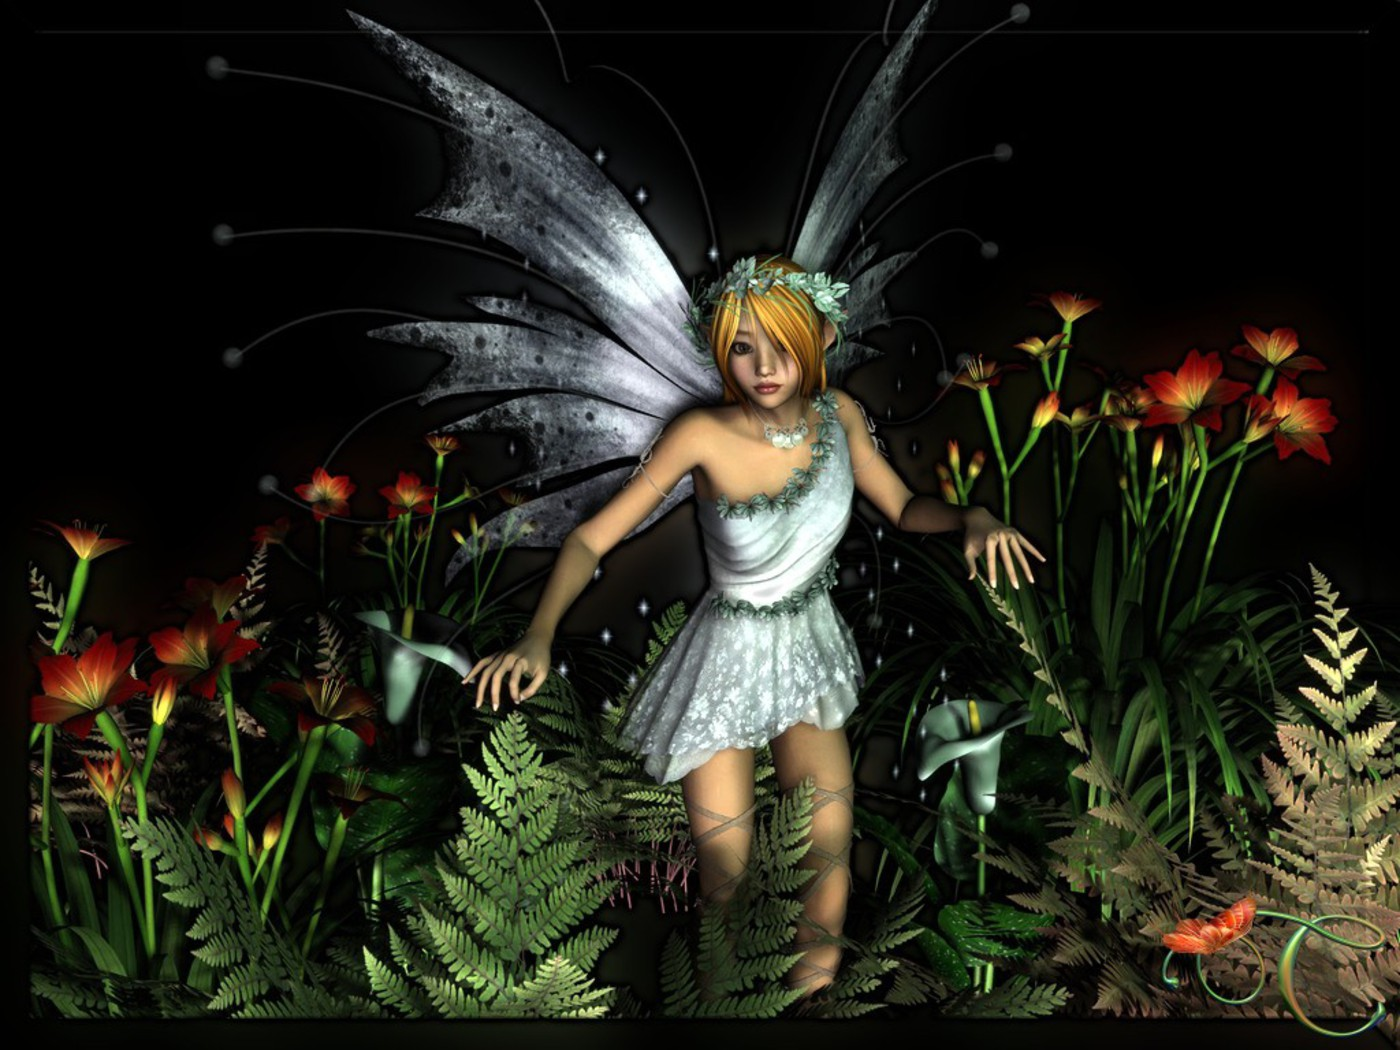 Angels Wallpapers For Desktop 3d: HD Wallpapers: Download 3D Fairy Angels HD Wallpapers Free